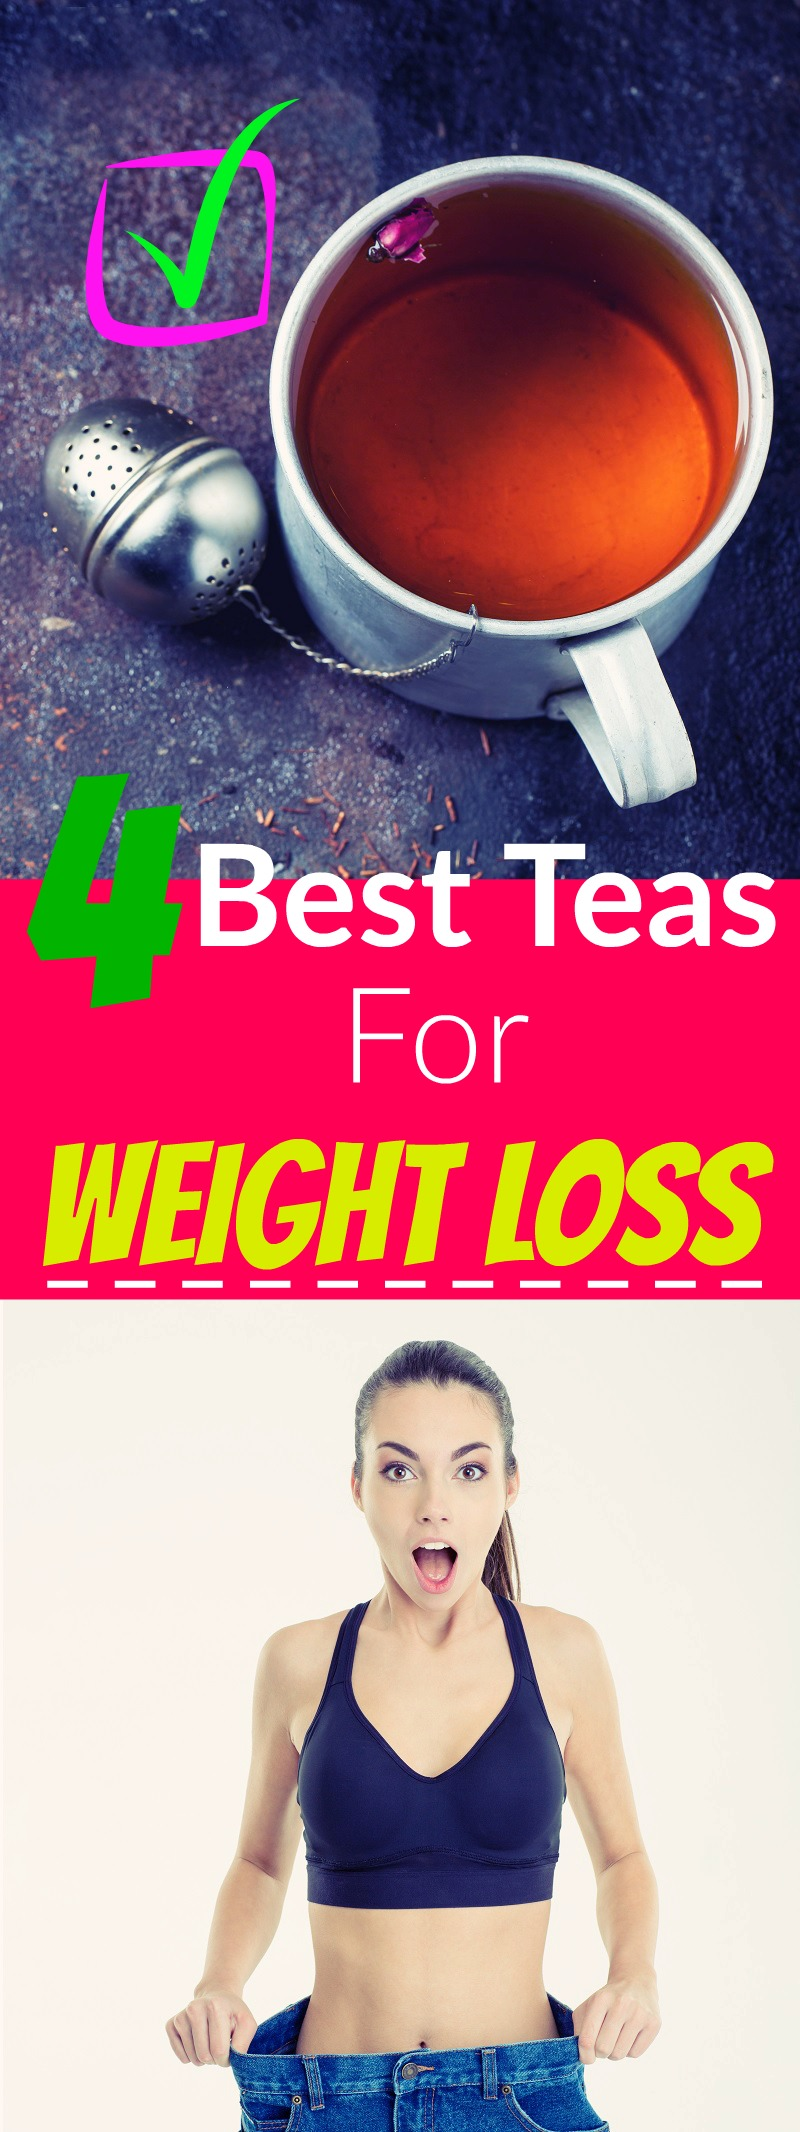 4 Best Teas For Weight Loss